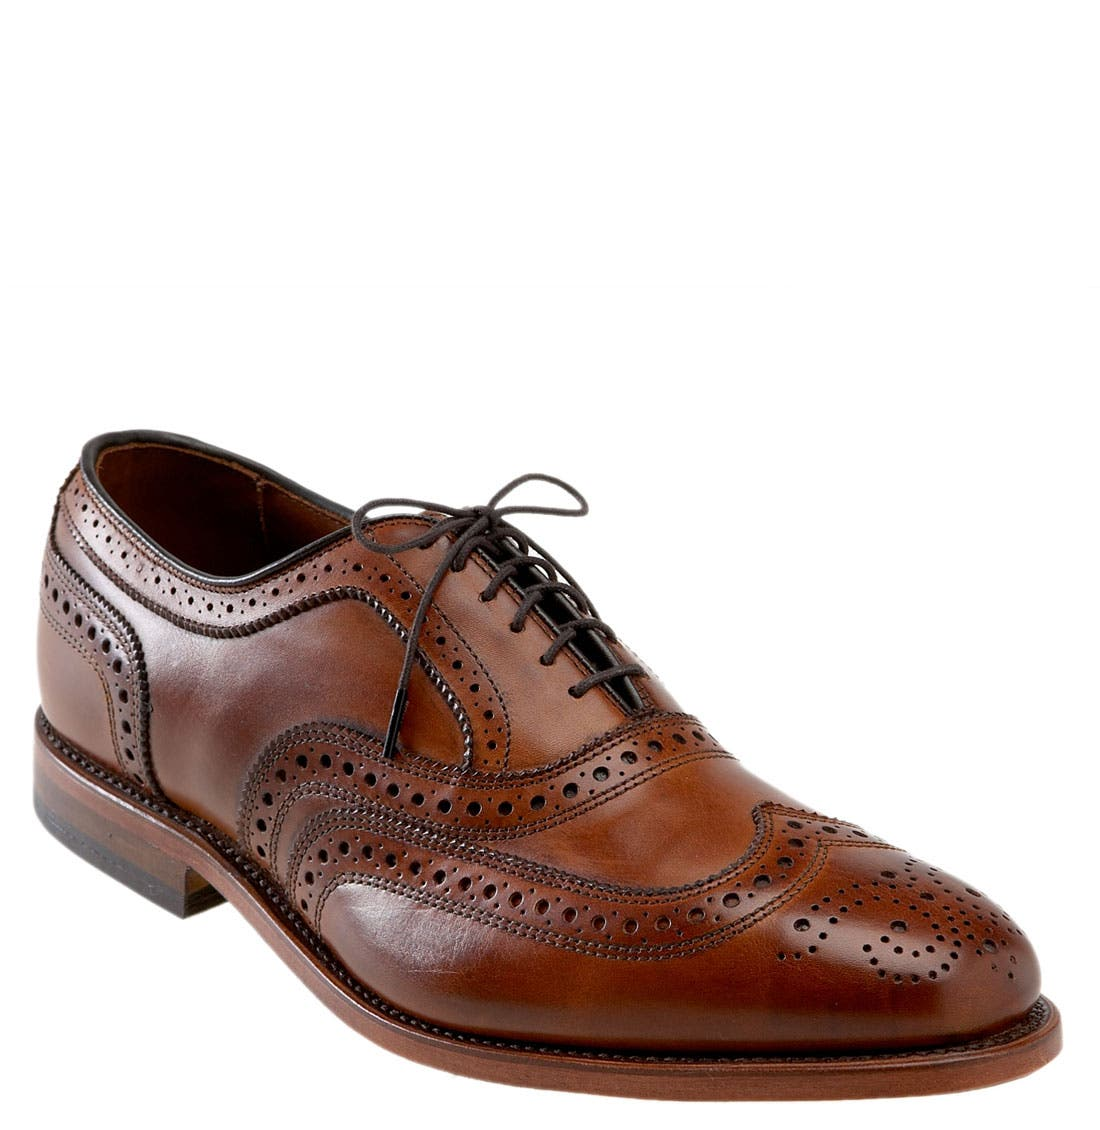 'McAllister' Wingtip,                             Main thumbnail 1, color,                             WALNUT LEATHER